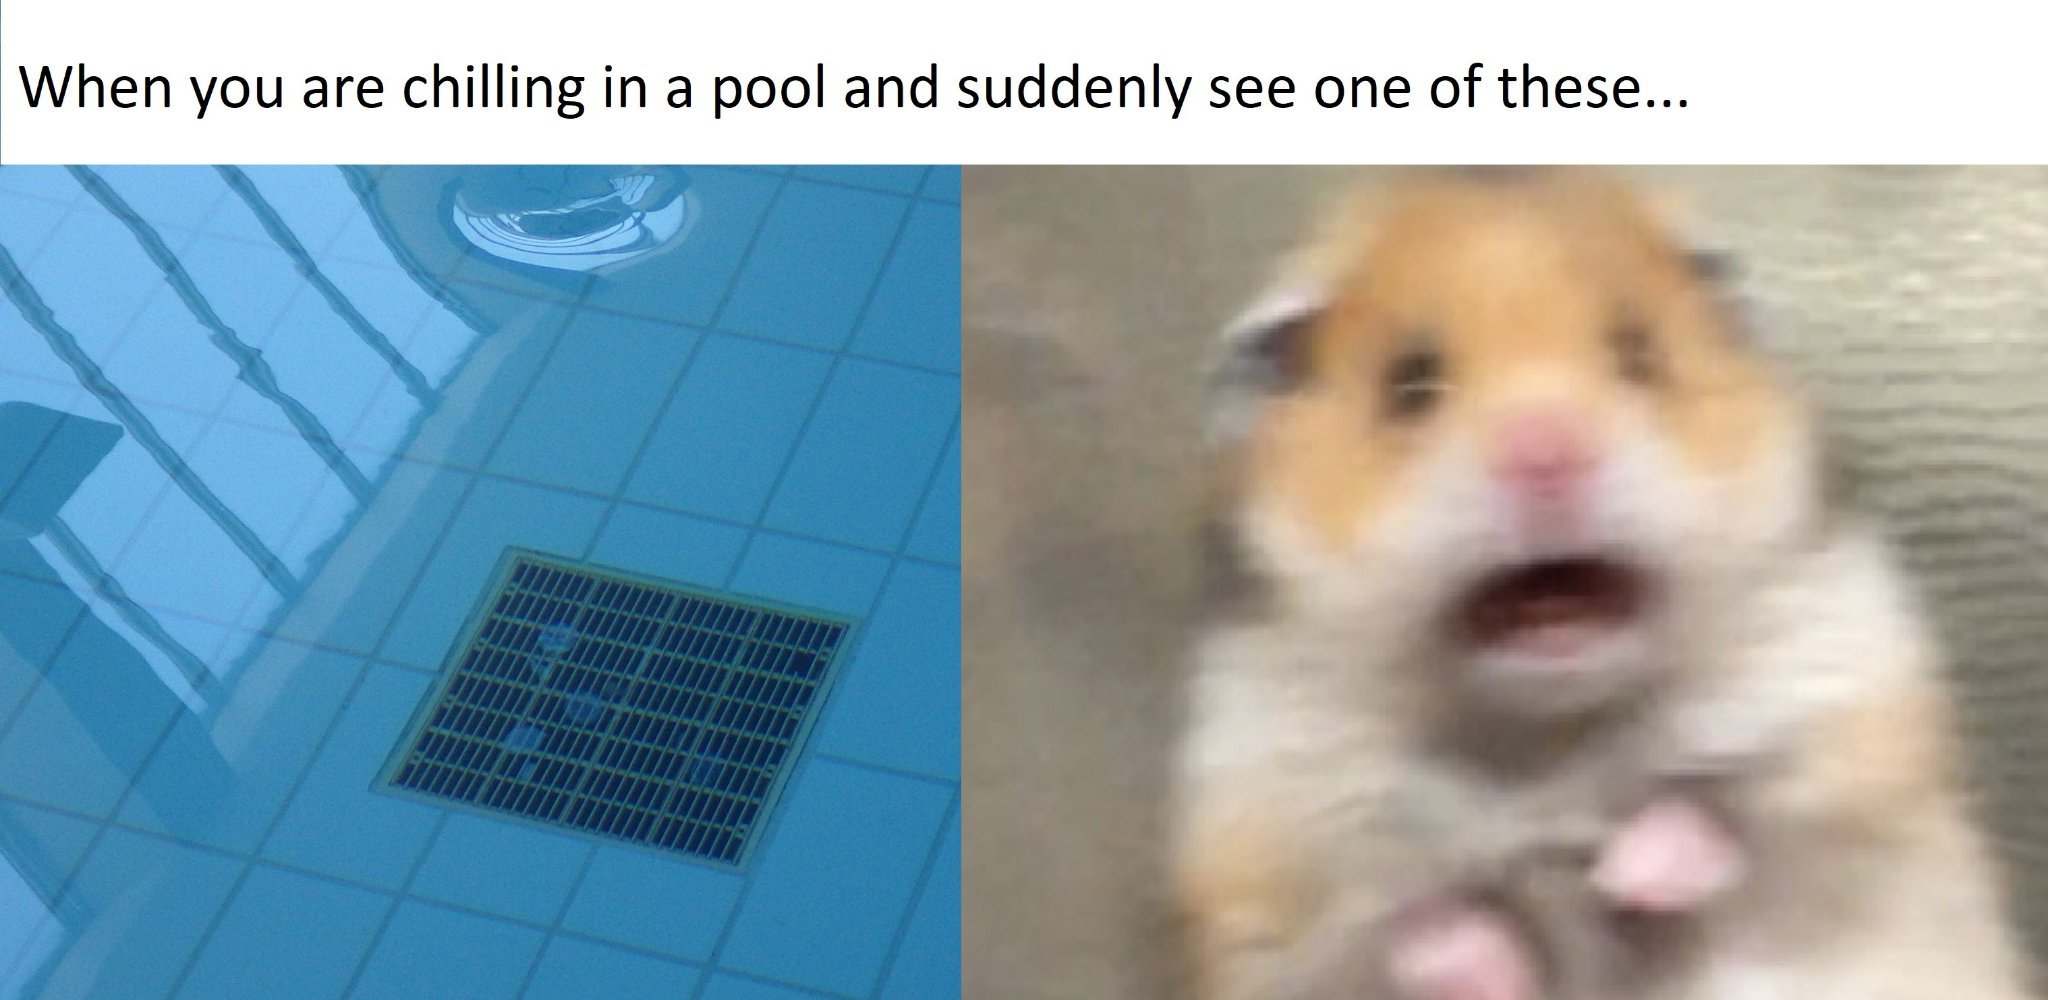 Pool drains... - meme